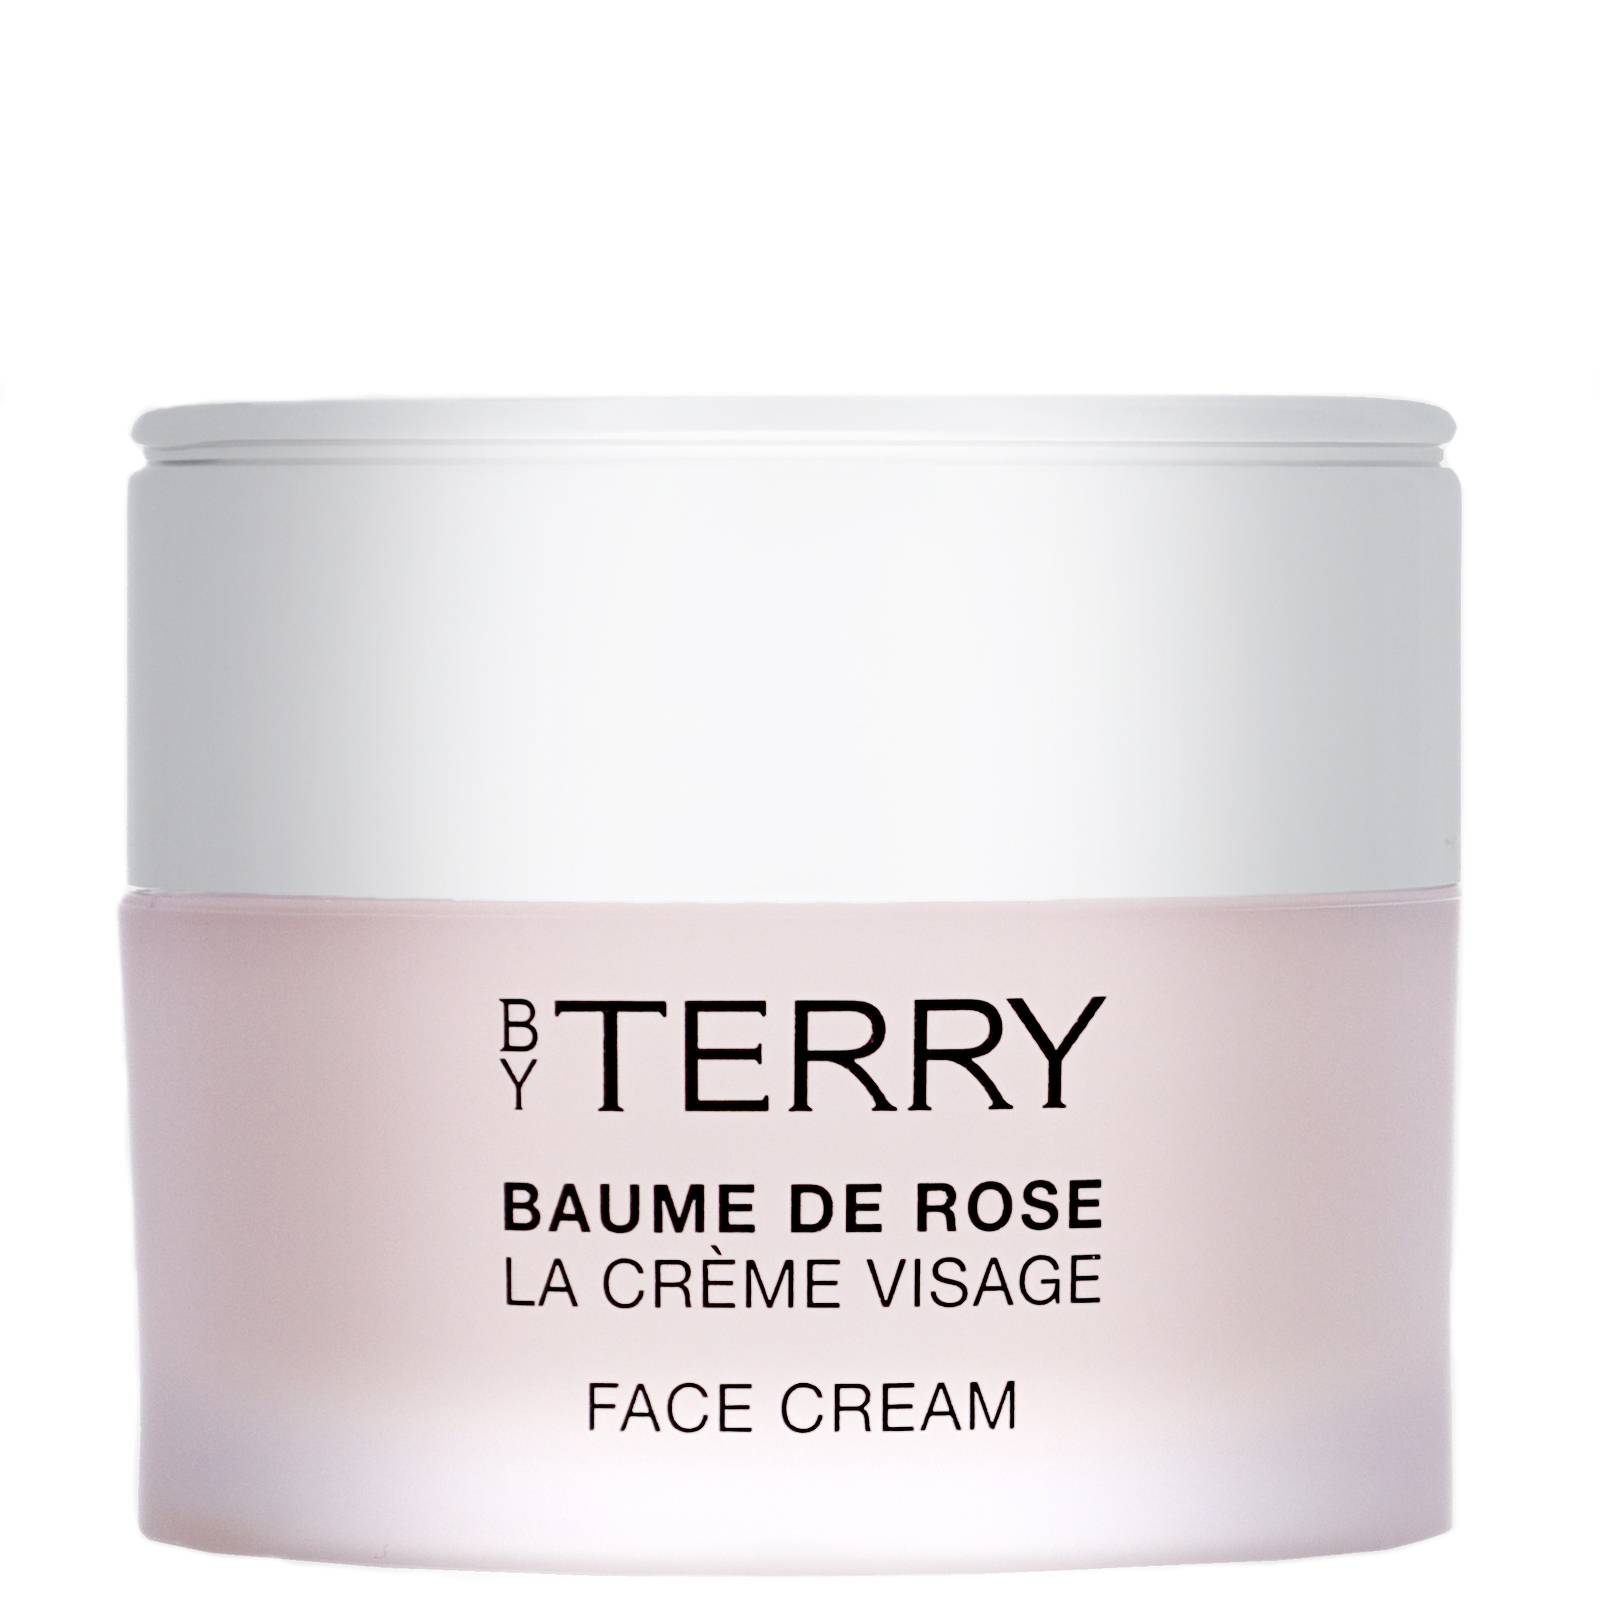 By Terry Baume De Rose La Creme Visage 50ml